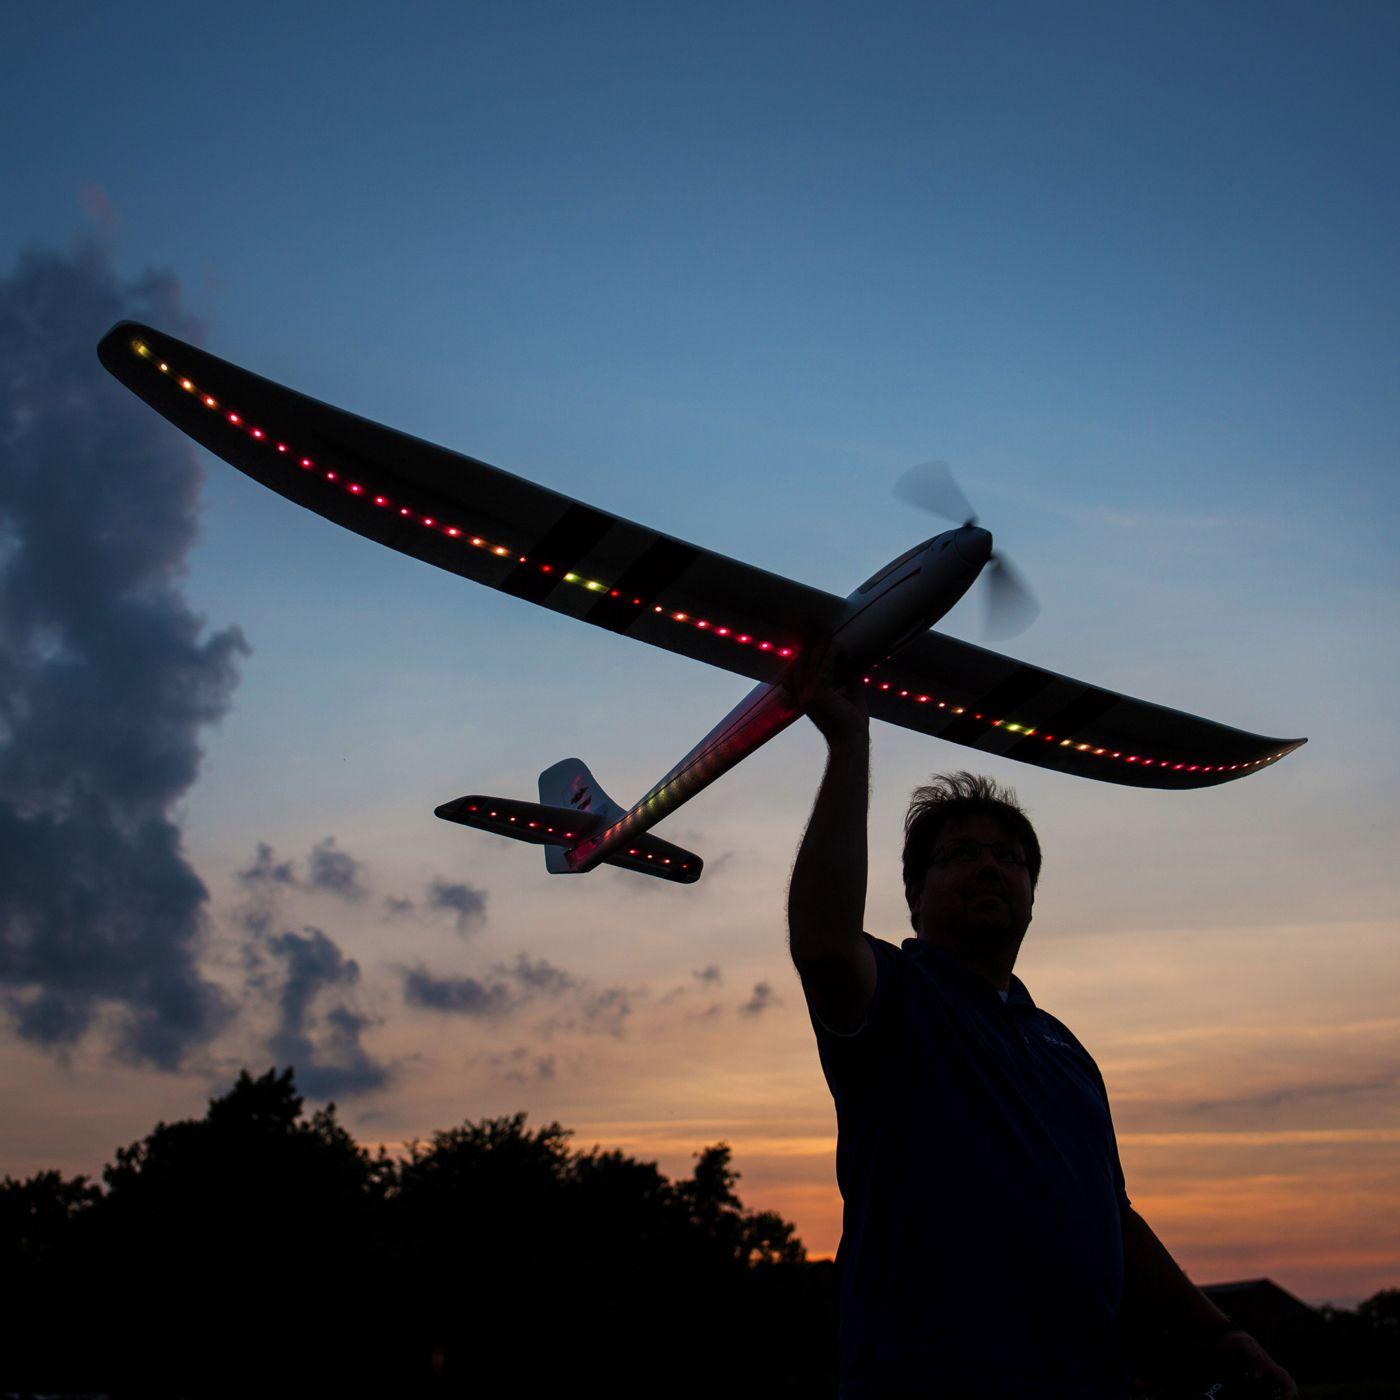 Night Radian E-flite